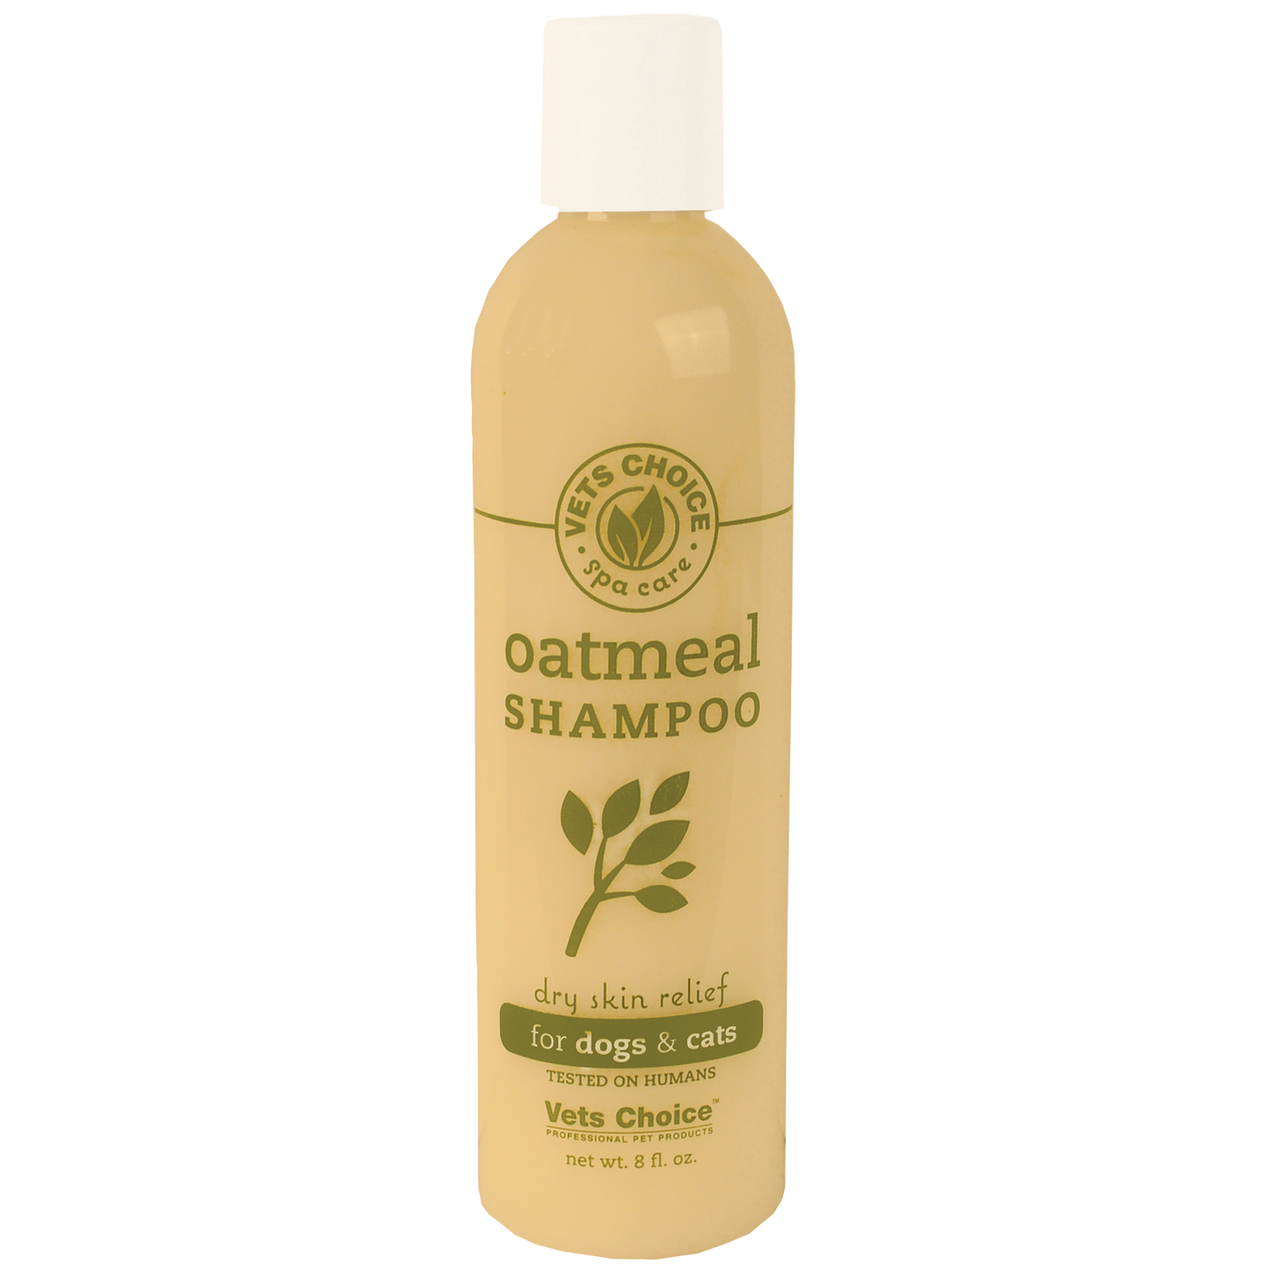 Oatmeal Shampoo for Dogs and Cats